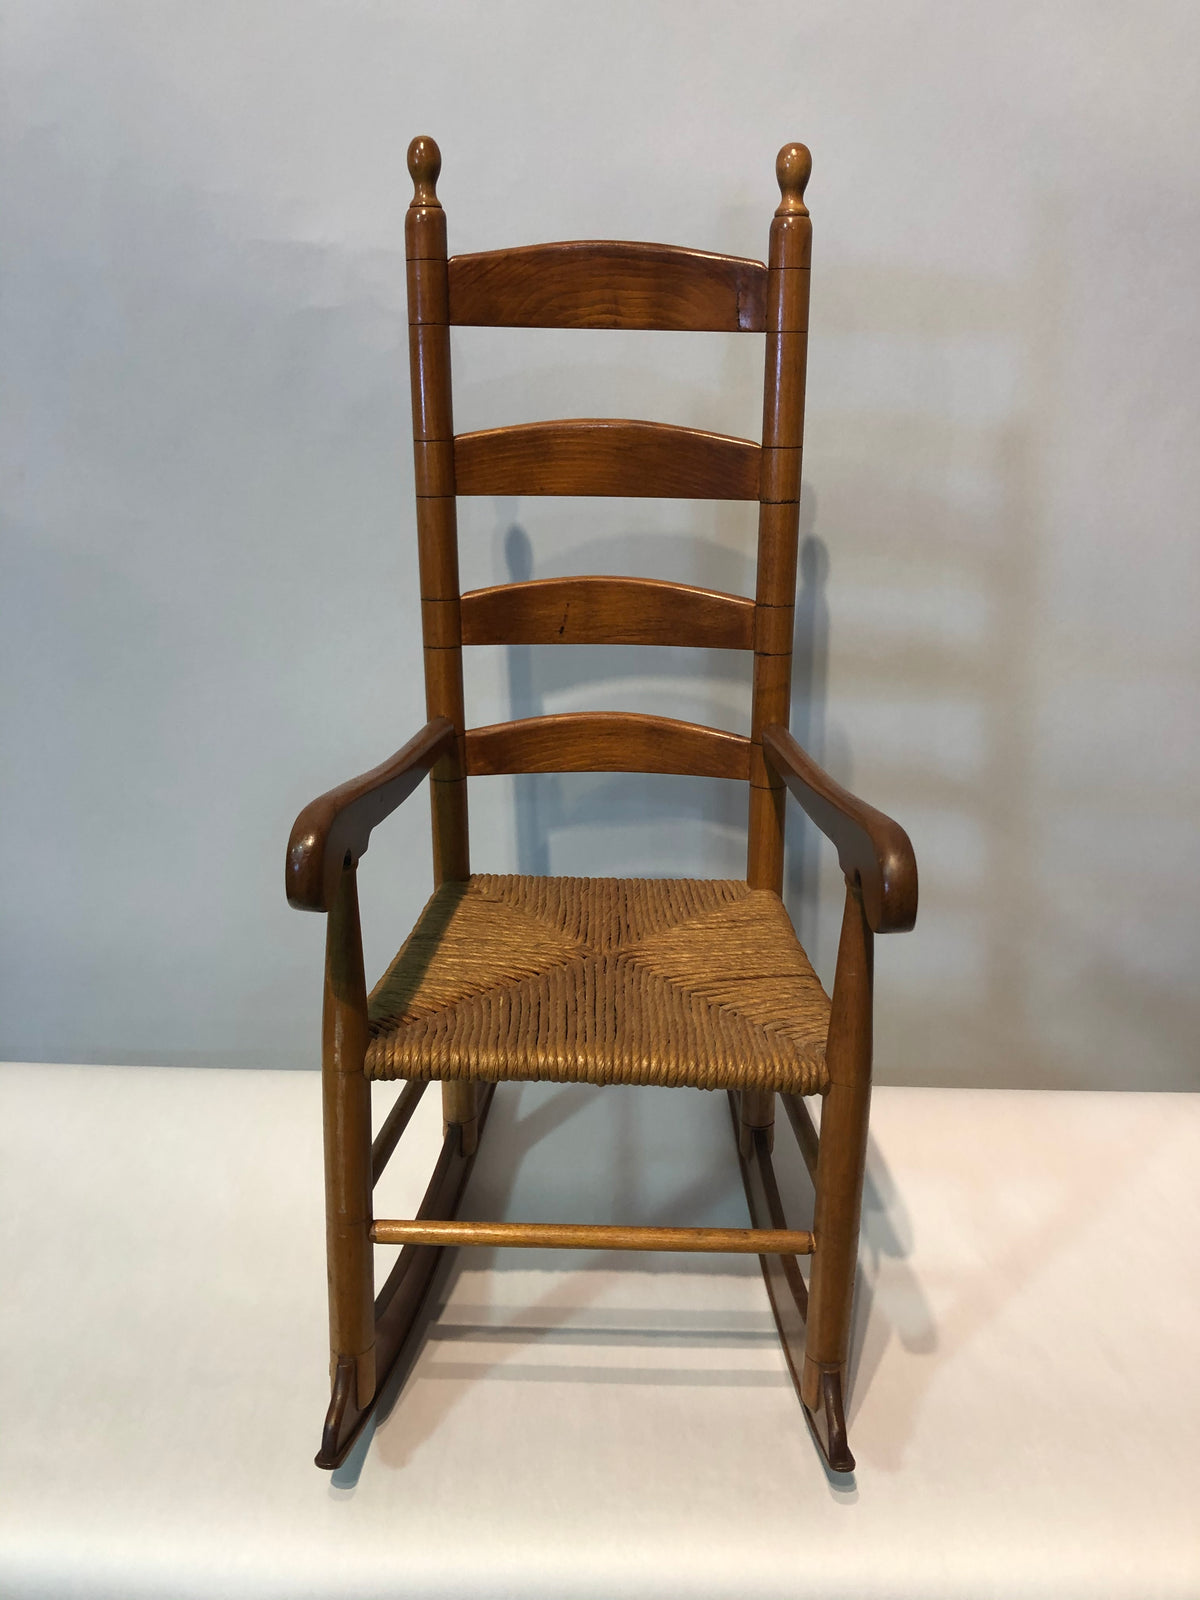 Miniature Rocking Chair signed P Given 1975